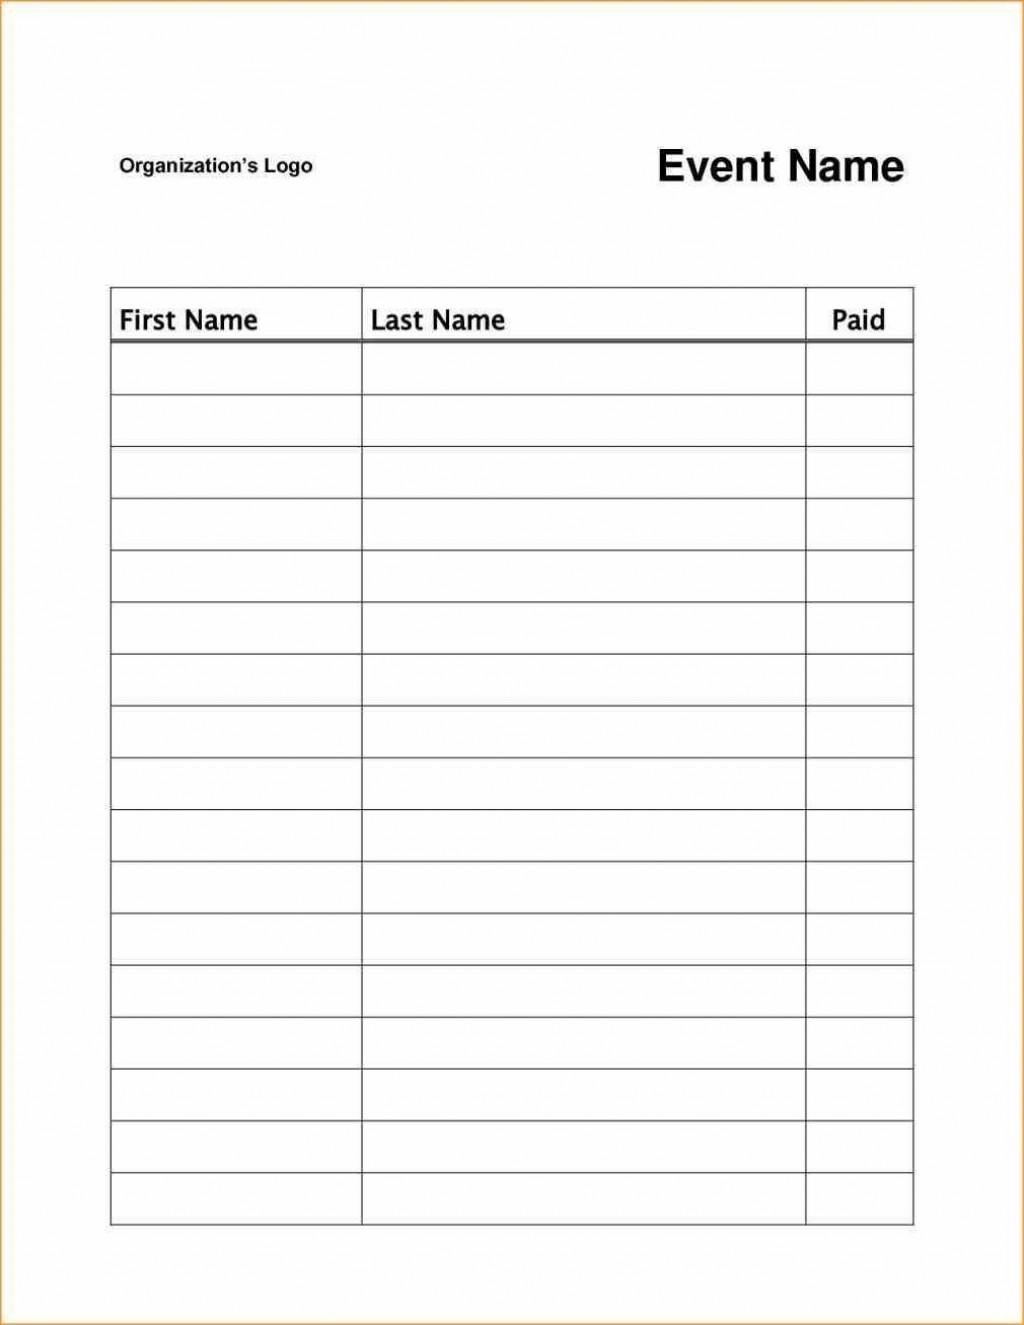 003 Archaicawful Event Sign Up Sheet Template High Resolution  In Google Doc FreeLarge